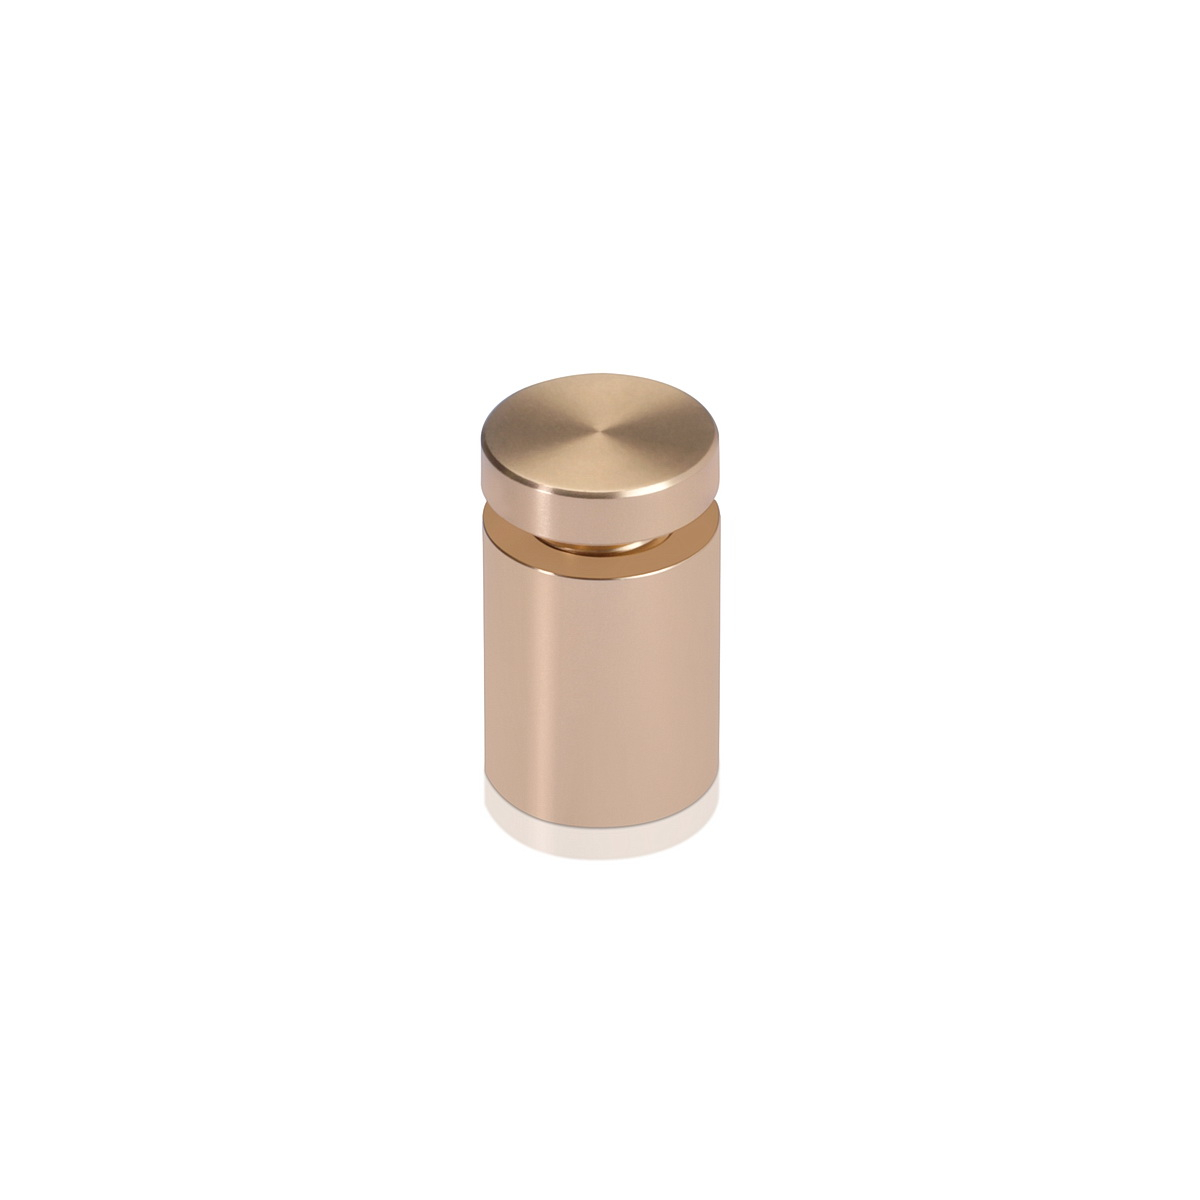 Affordable Aluminum Standoffs, Diameter: 5/8'', Standoff: 3/4'', Aluminum Champagne Finish